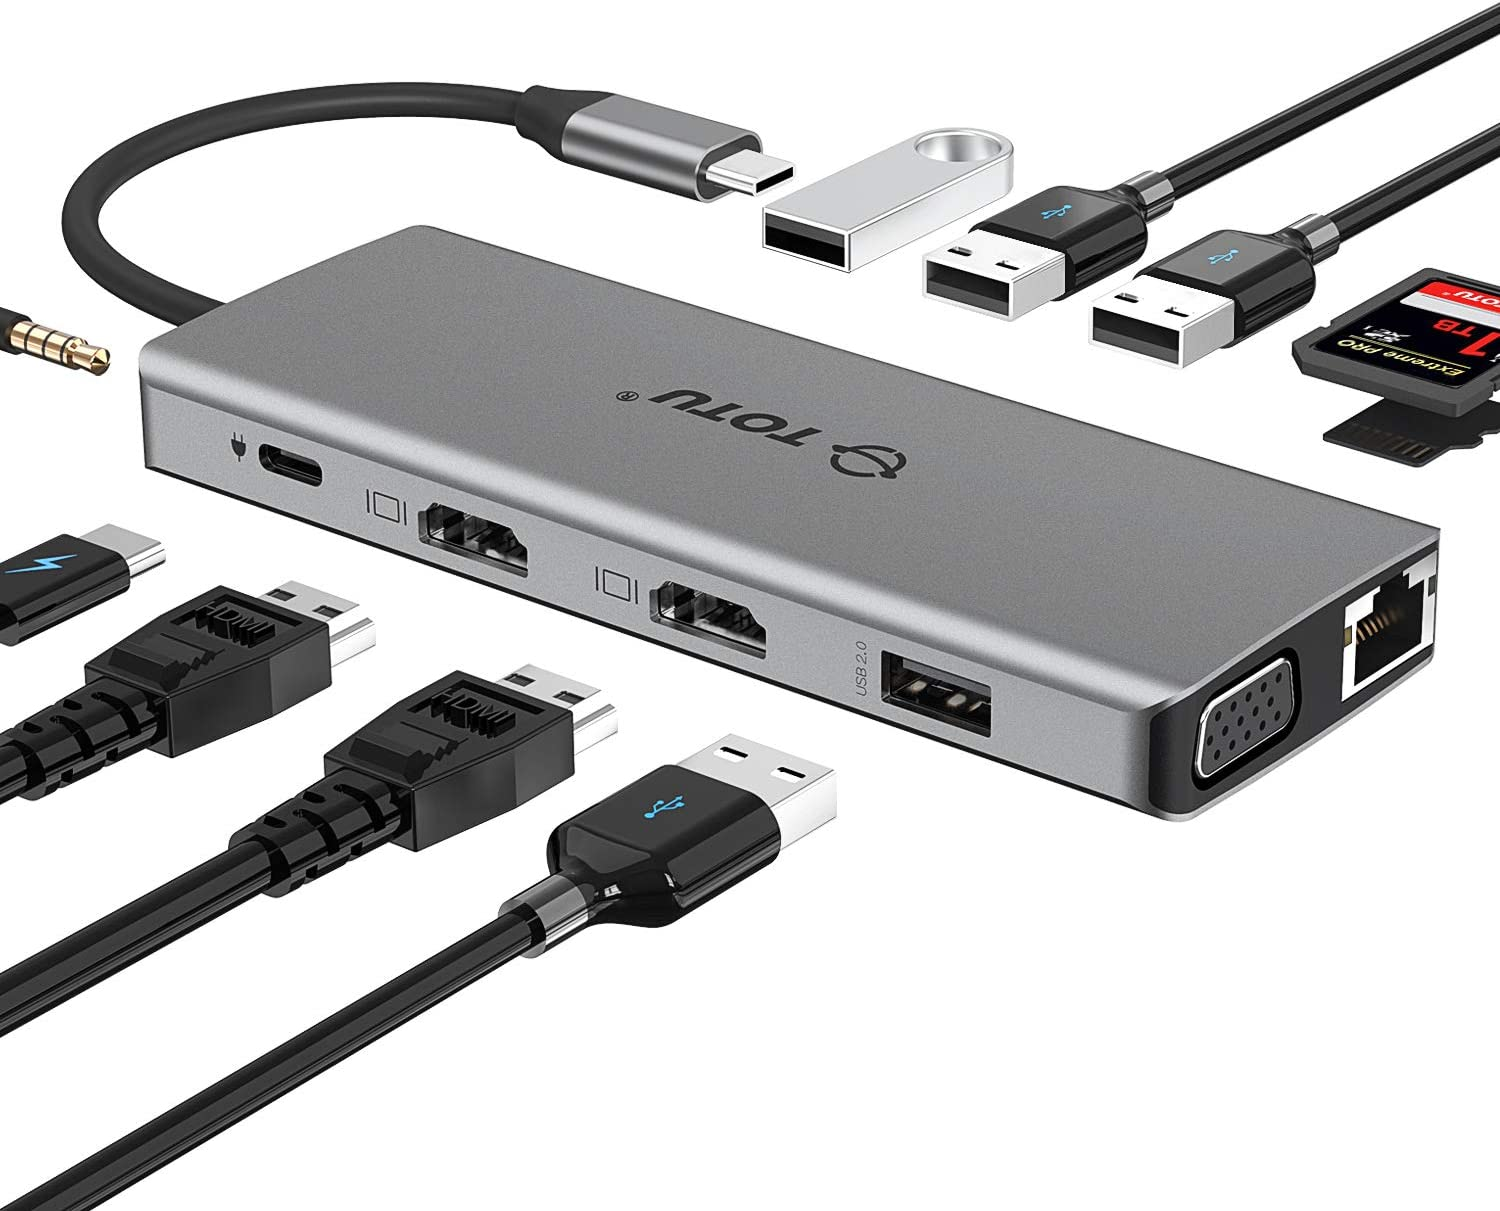 USB C Hub, TOTU 12-in-1 Type C Hub with Ethernet,4K USB C to 2 HDMI,VGA,2 USB3.0, 2 USB2.0,79W PD 3.0,SD/TF Cards Reader,Mic/Audio for Mac Pro/Type C Laptops (Windows Laptops Support Triple Display)